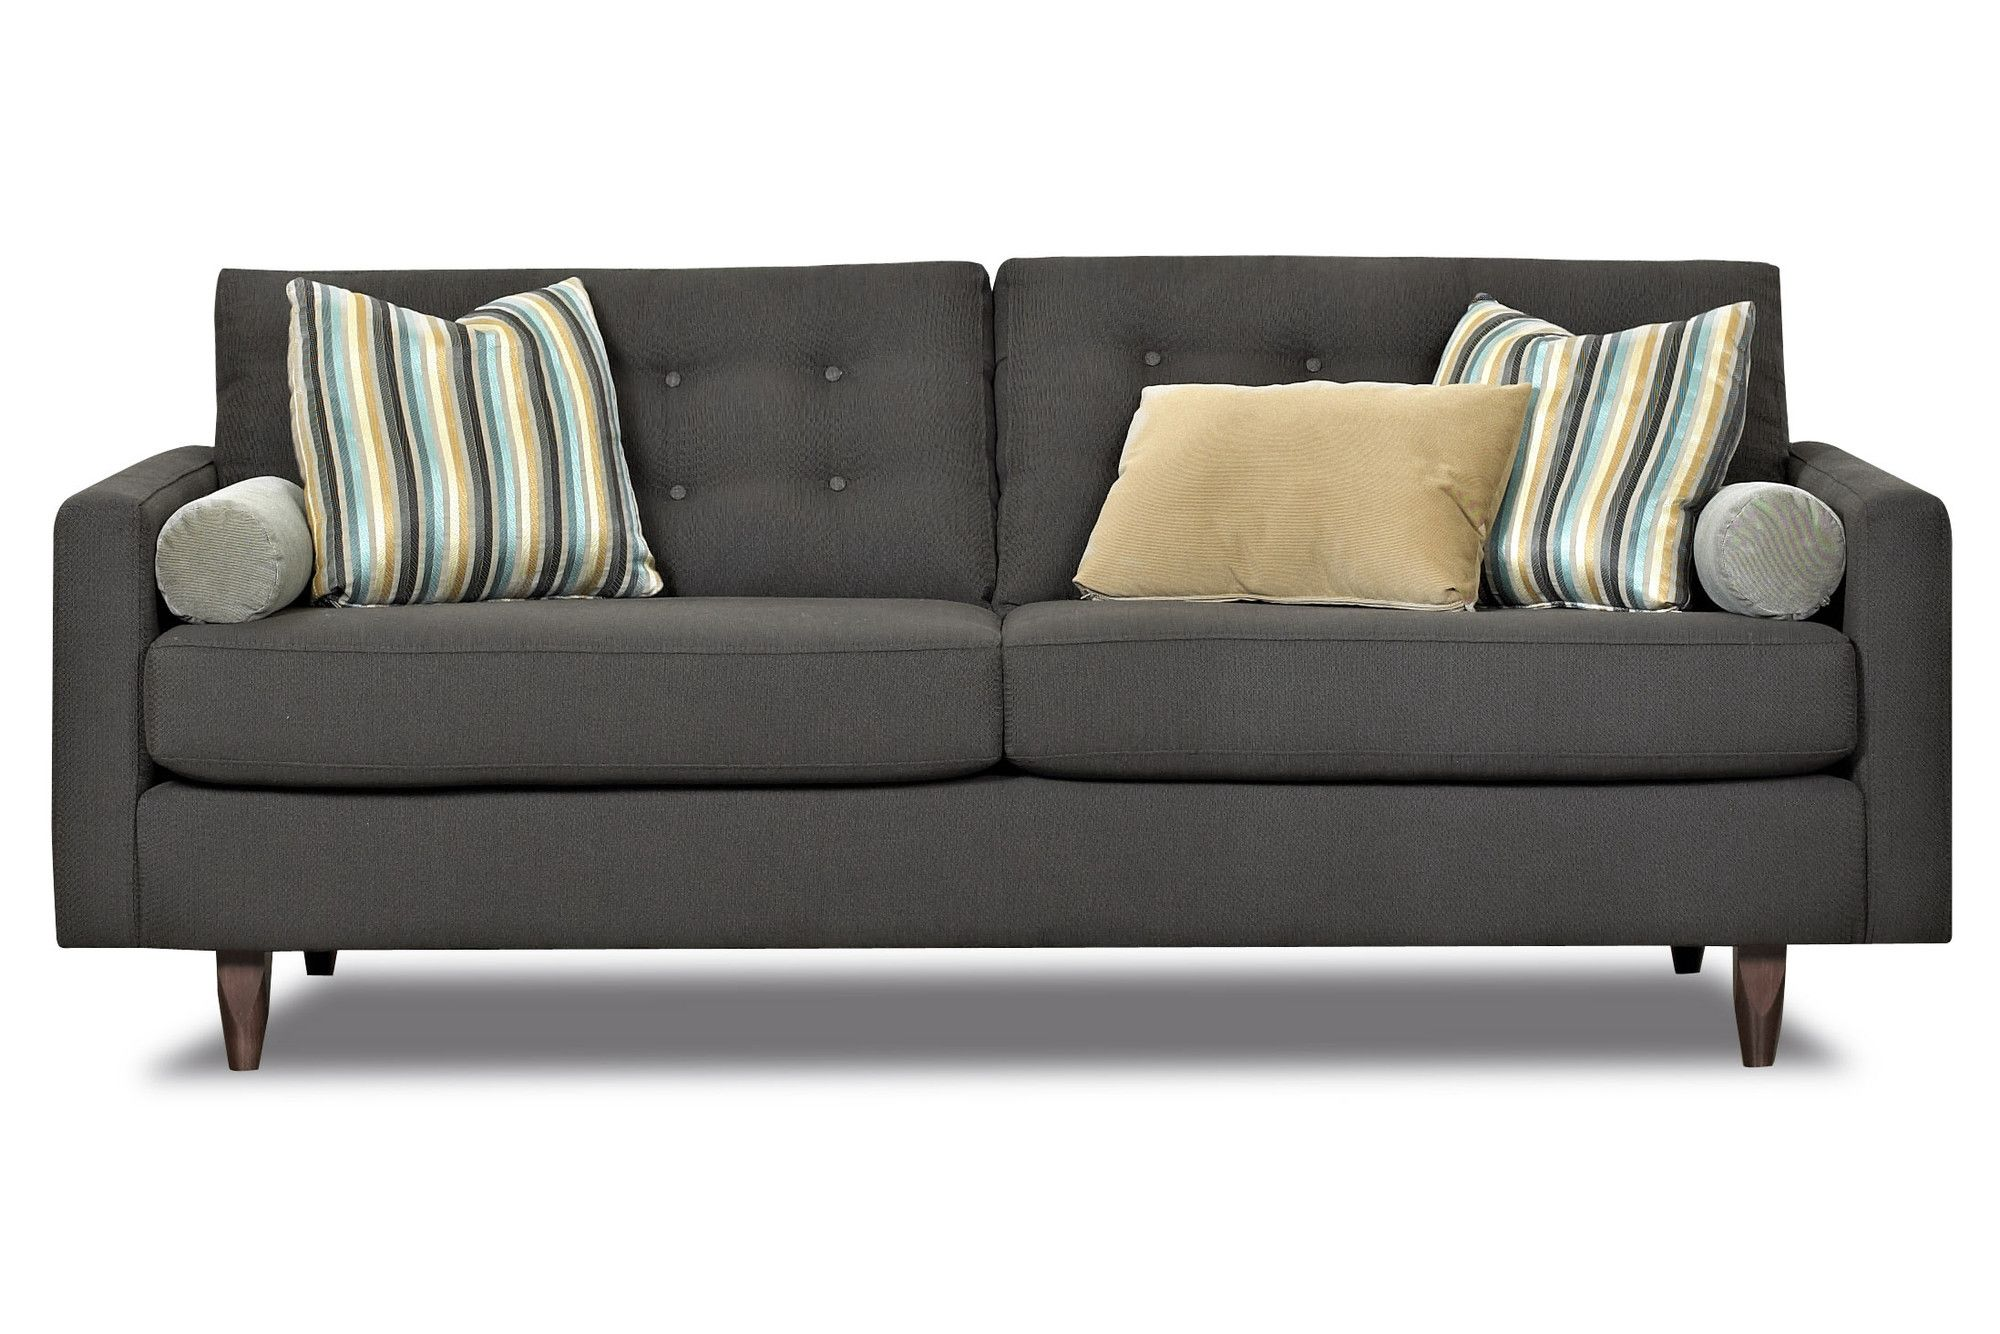 Sofas And Sectionals Com Reviews Moran Baxter Sofa Bed Klaussner Construction Baci Living Room